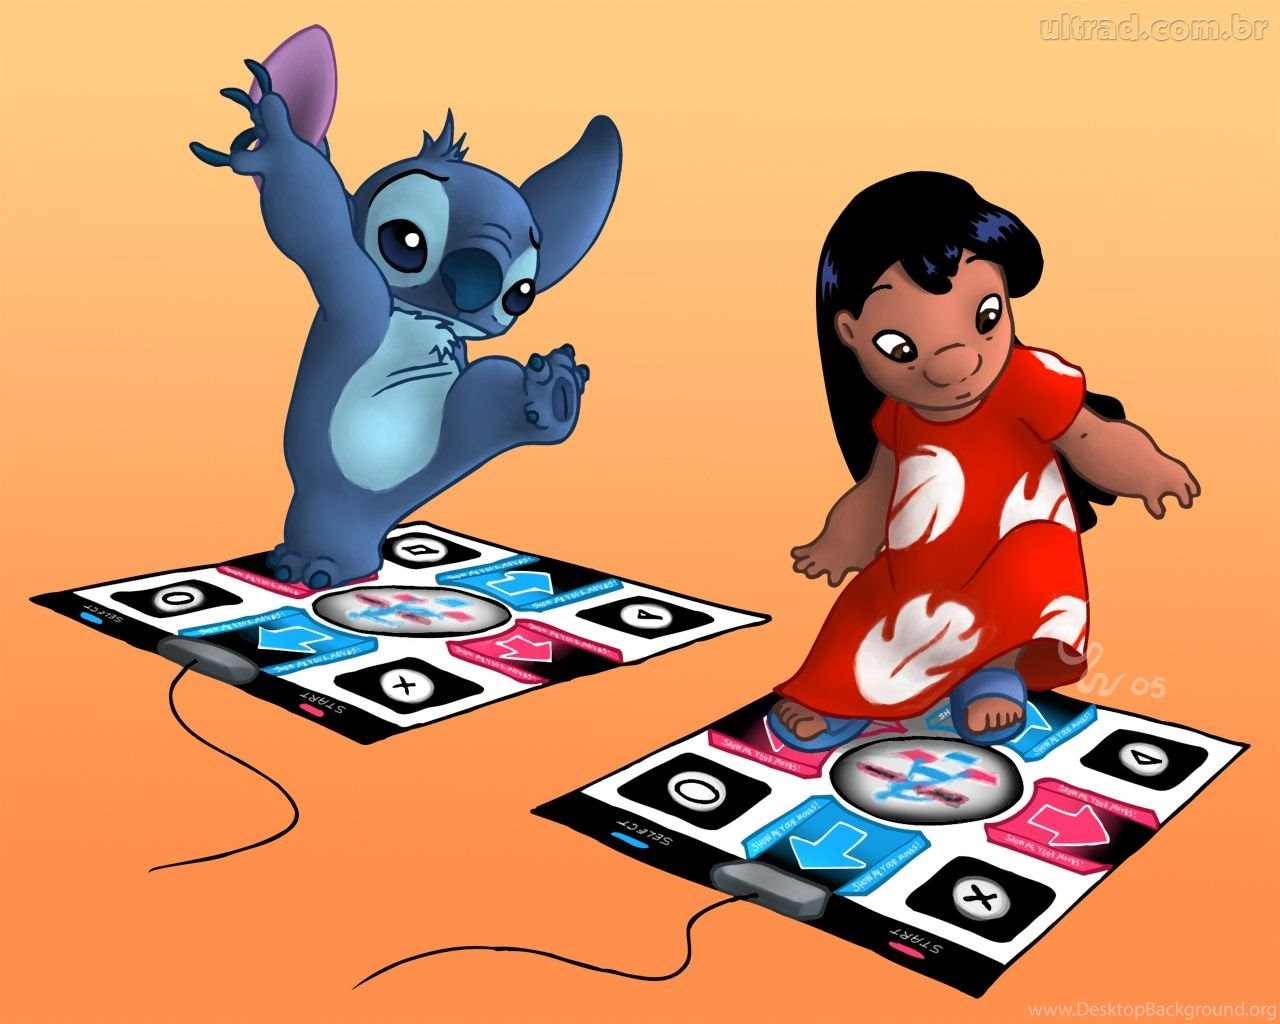 641968 lilo stitch hd backgrounds for galaxy note cartoons